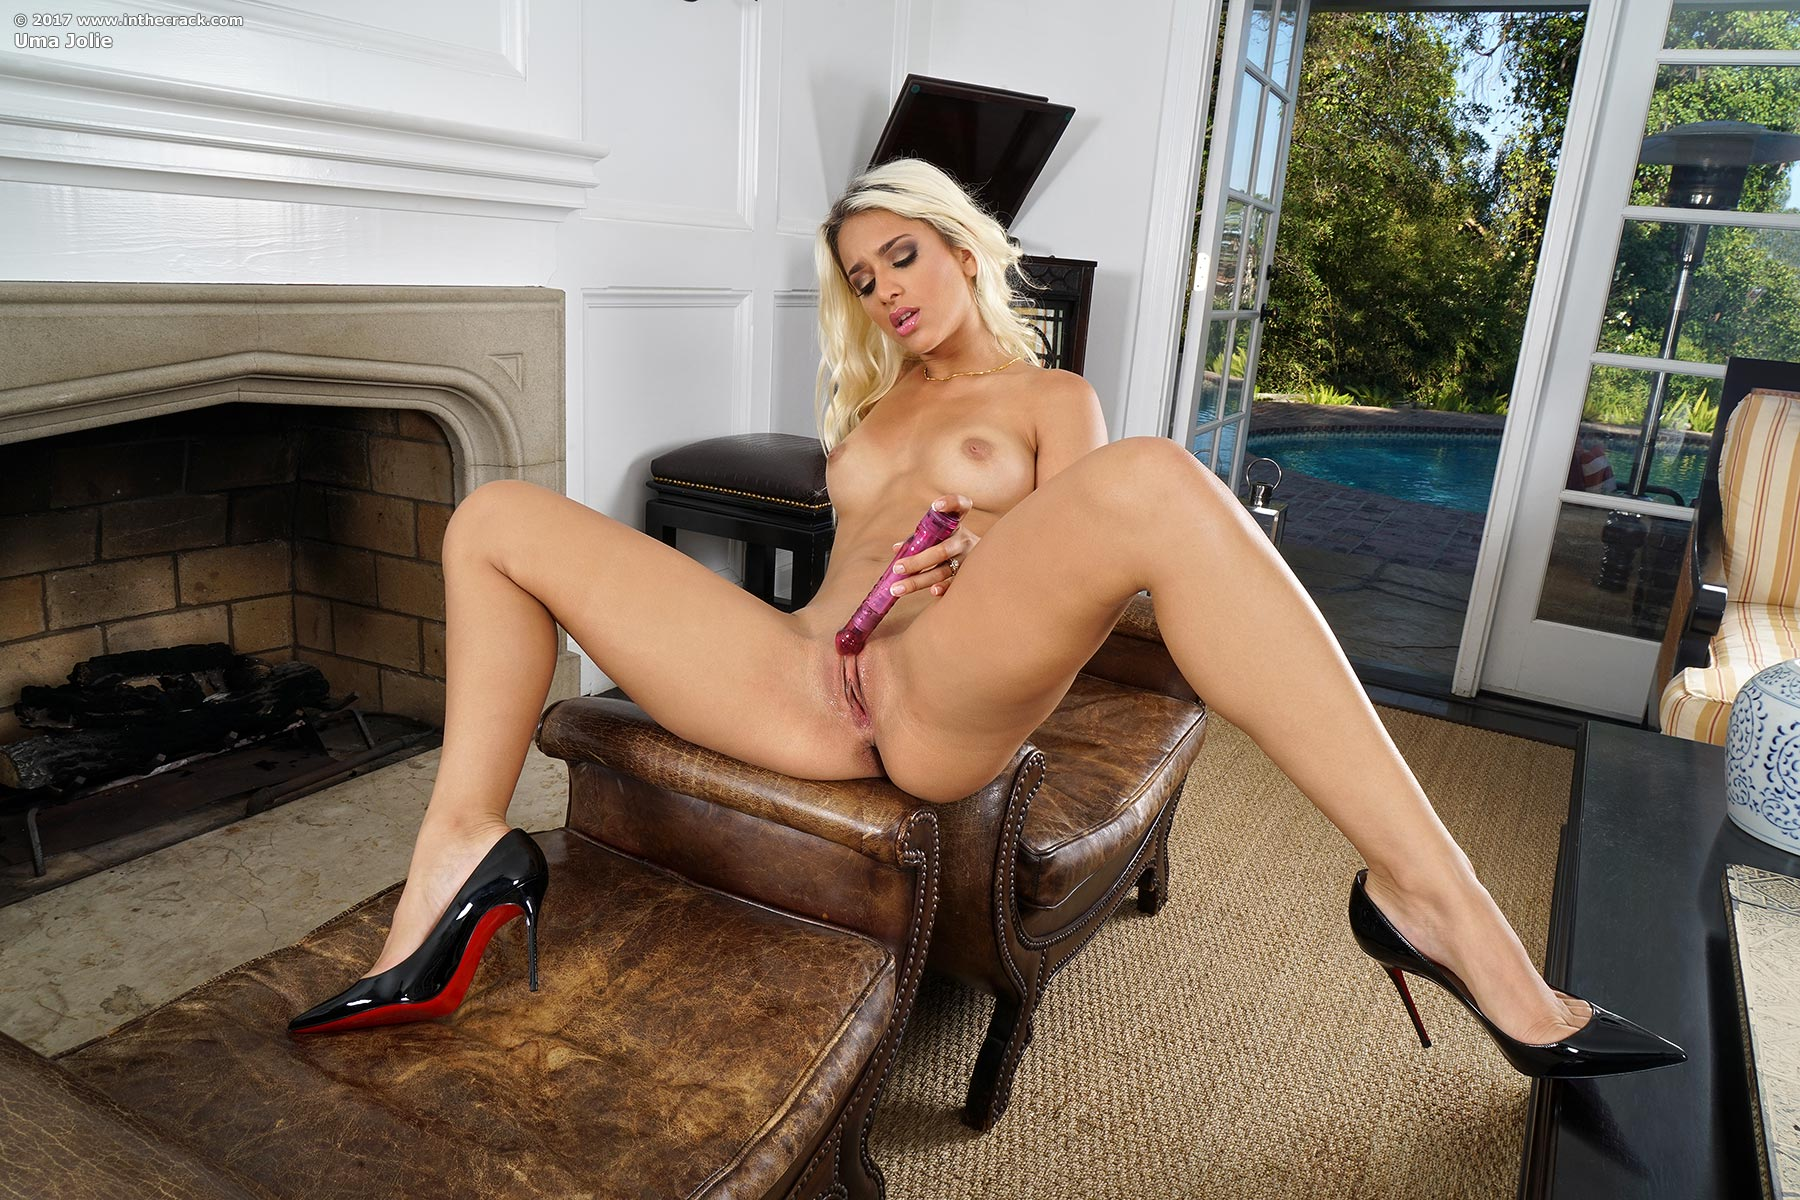 Blonde, Chair, Heels, Ivory, Solo, Spreading, Toys picture featuring Uma Jolie